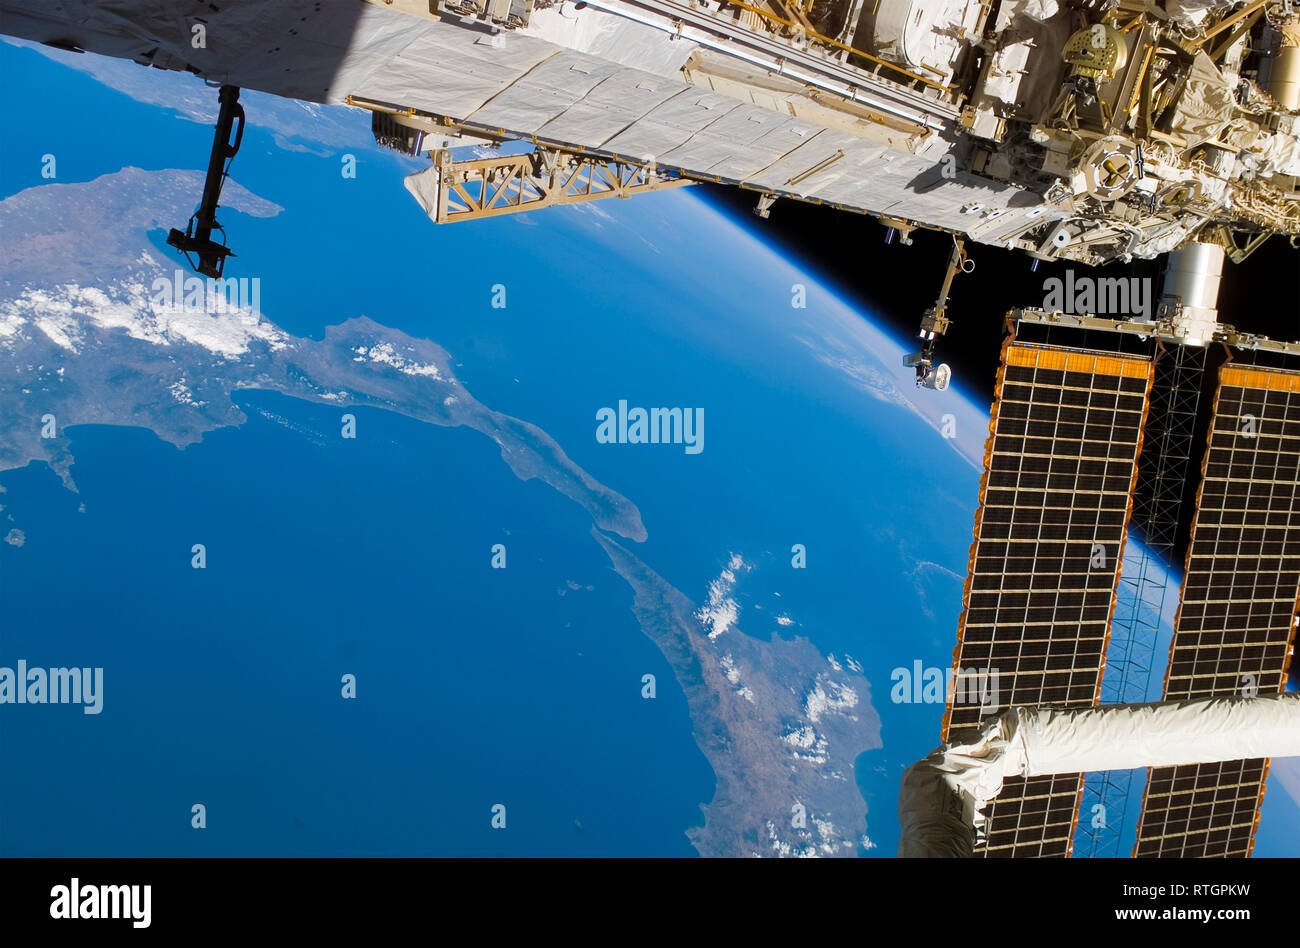 The International Space Station frames this view of thand the boot of Italy plus Siciily - Stock Image